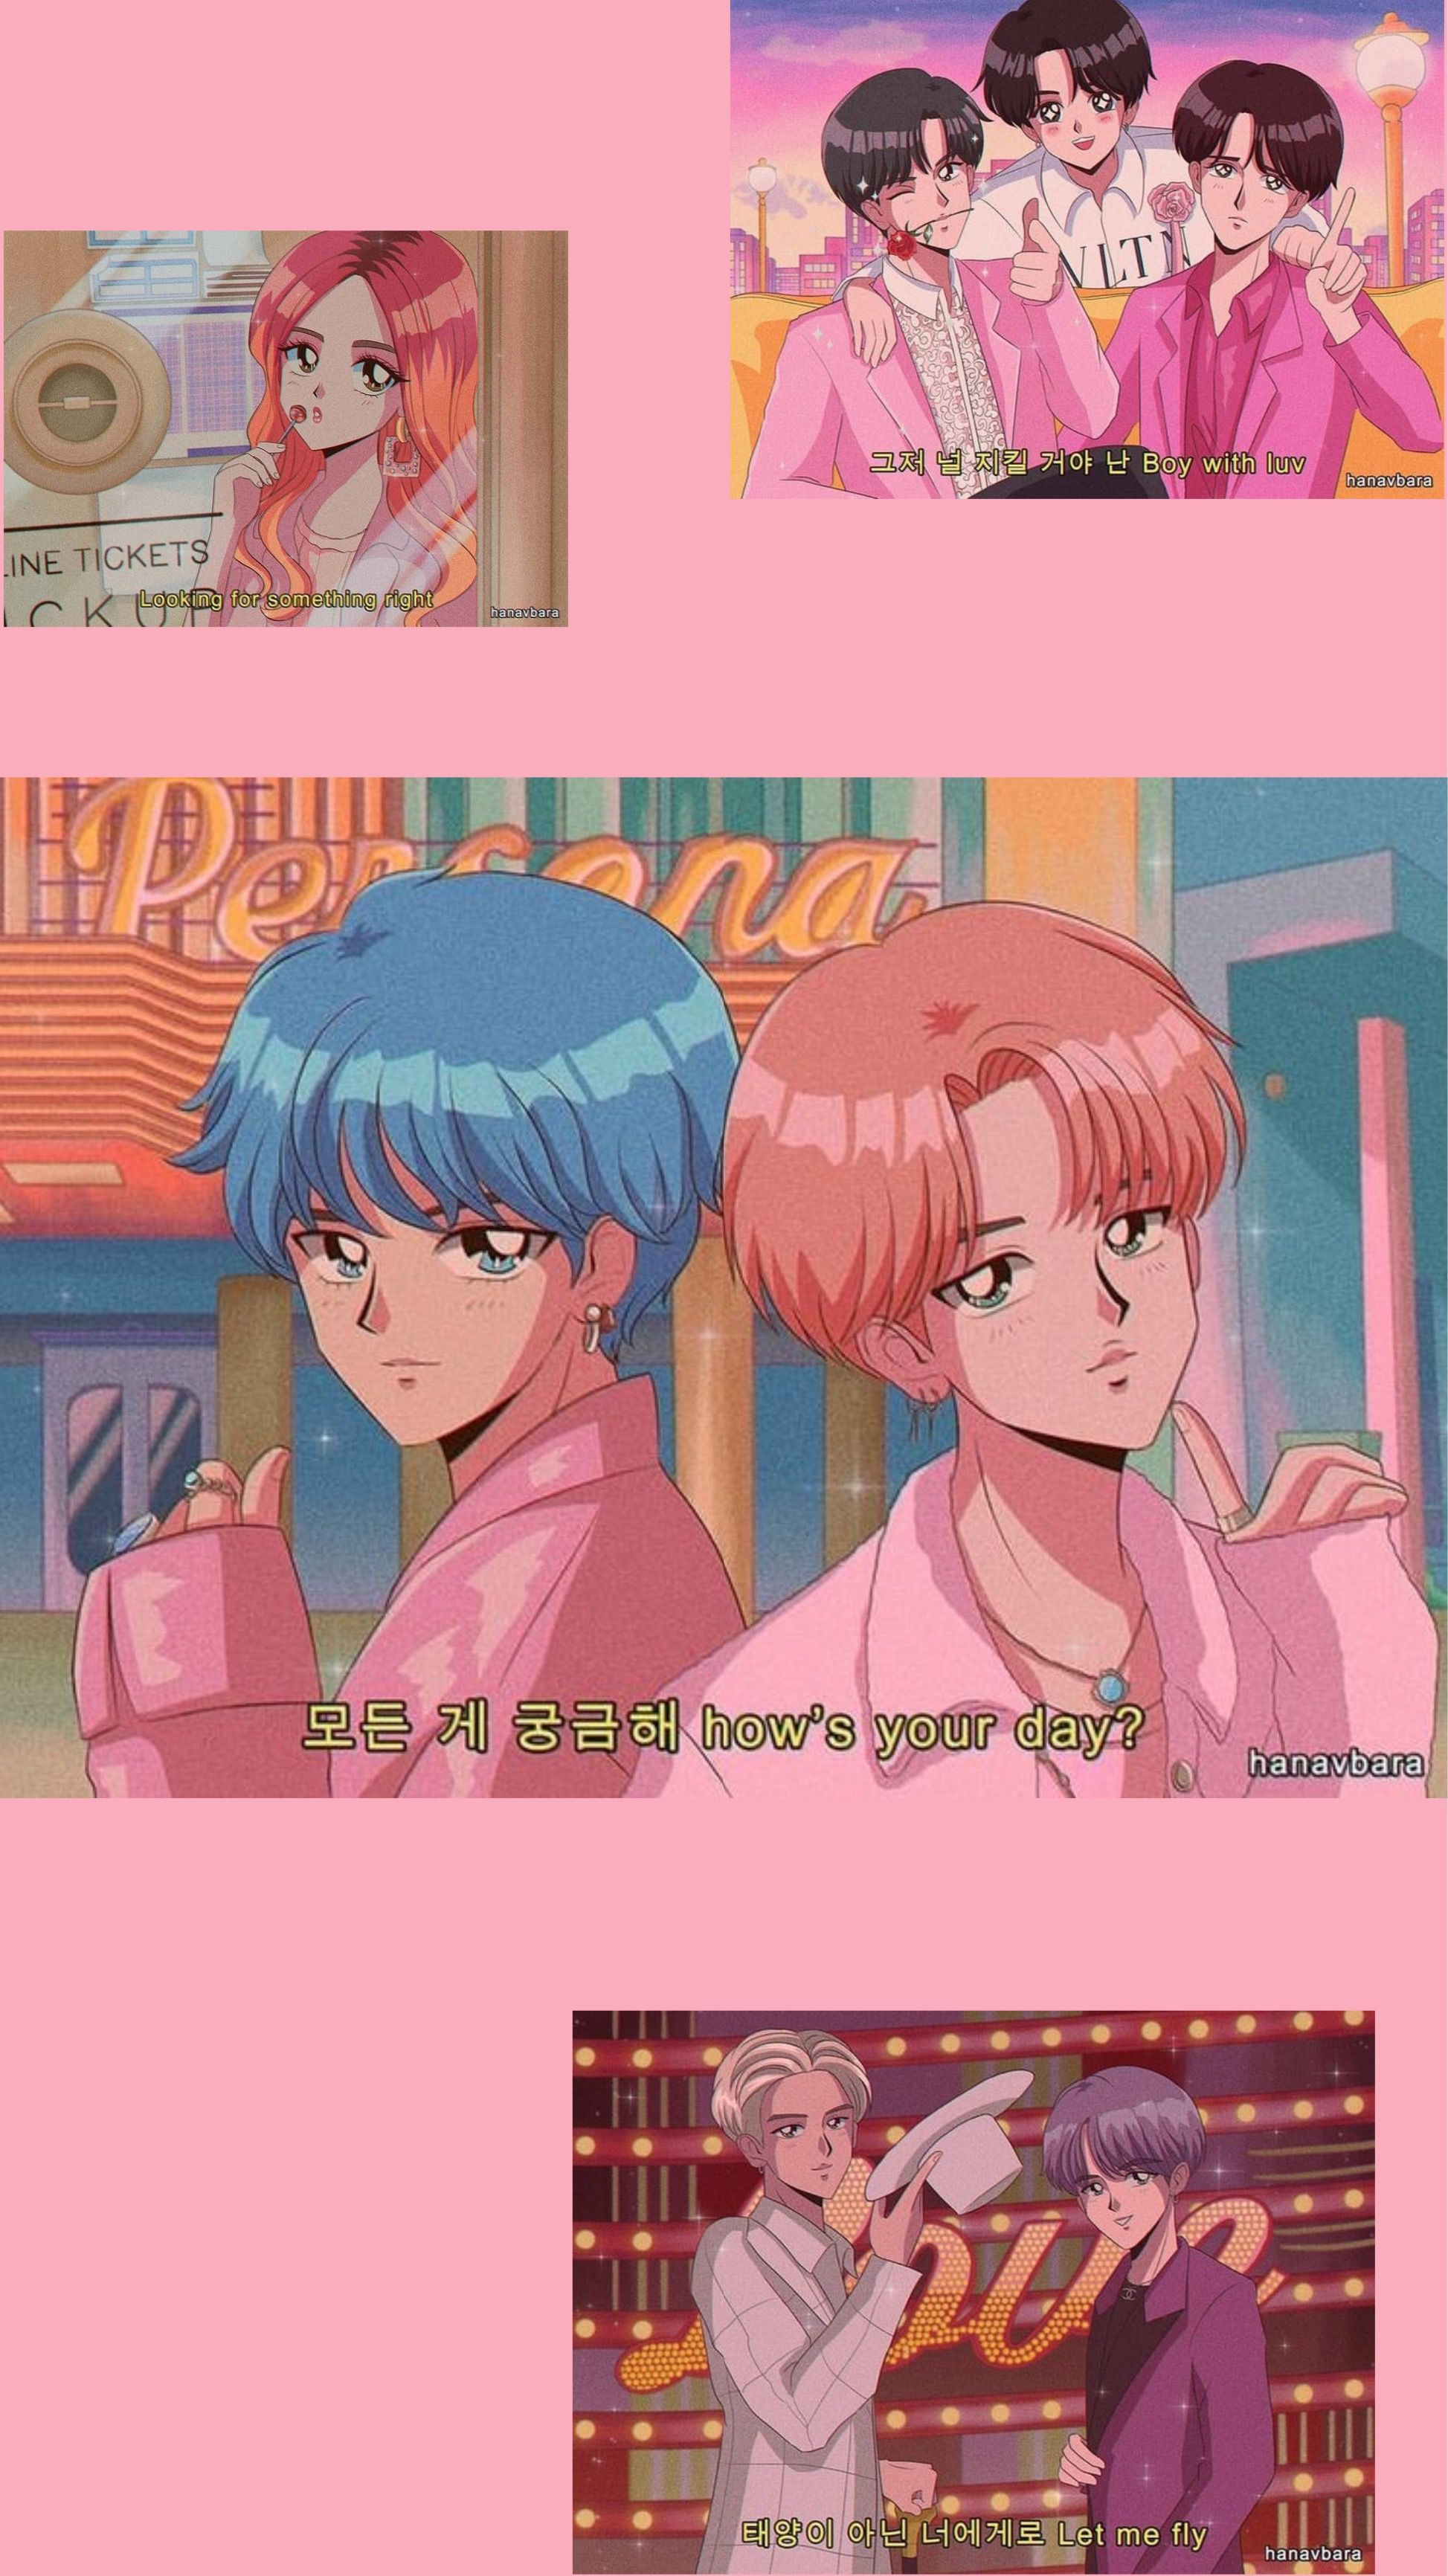 Most Beautiful Aesthetic Anime Wallpaper Iphone Bts Buywithluv Jungkook Jimin Yoongi Su In 2020 Anime Wallpaper Iphone Anime Wallpaper Aesthetic Anime